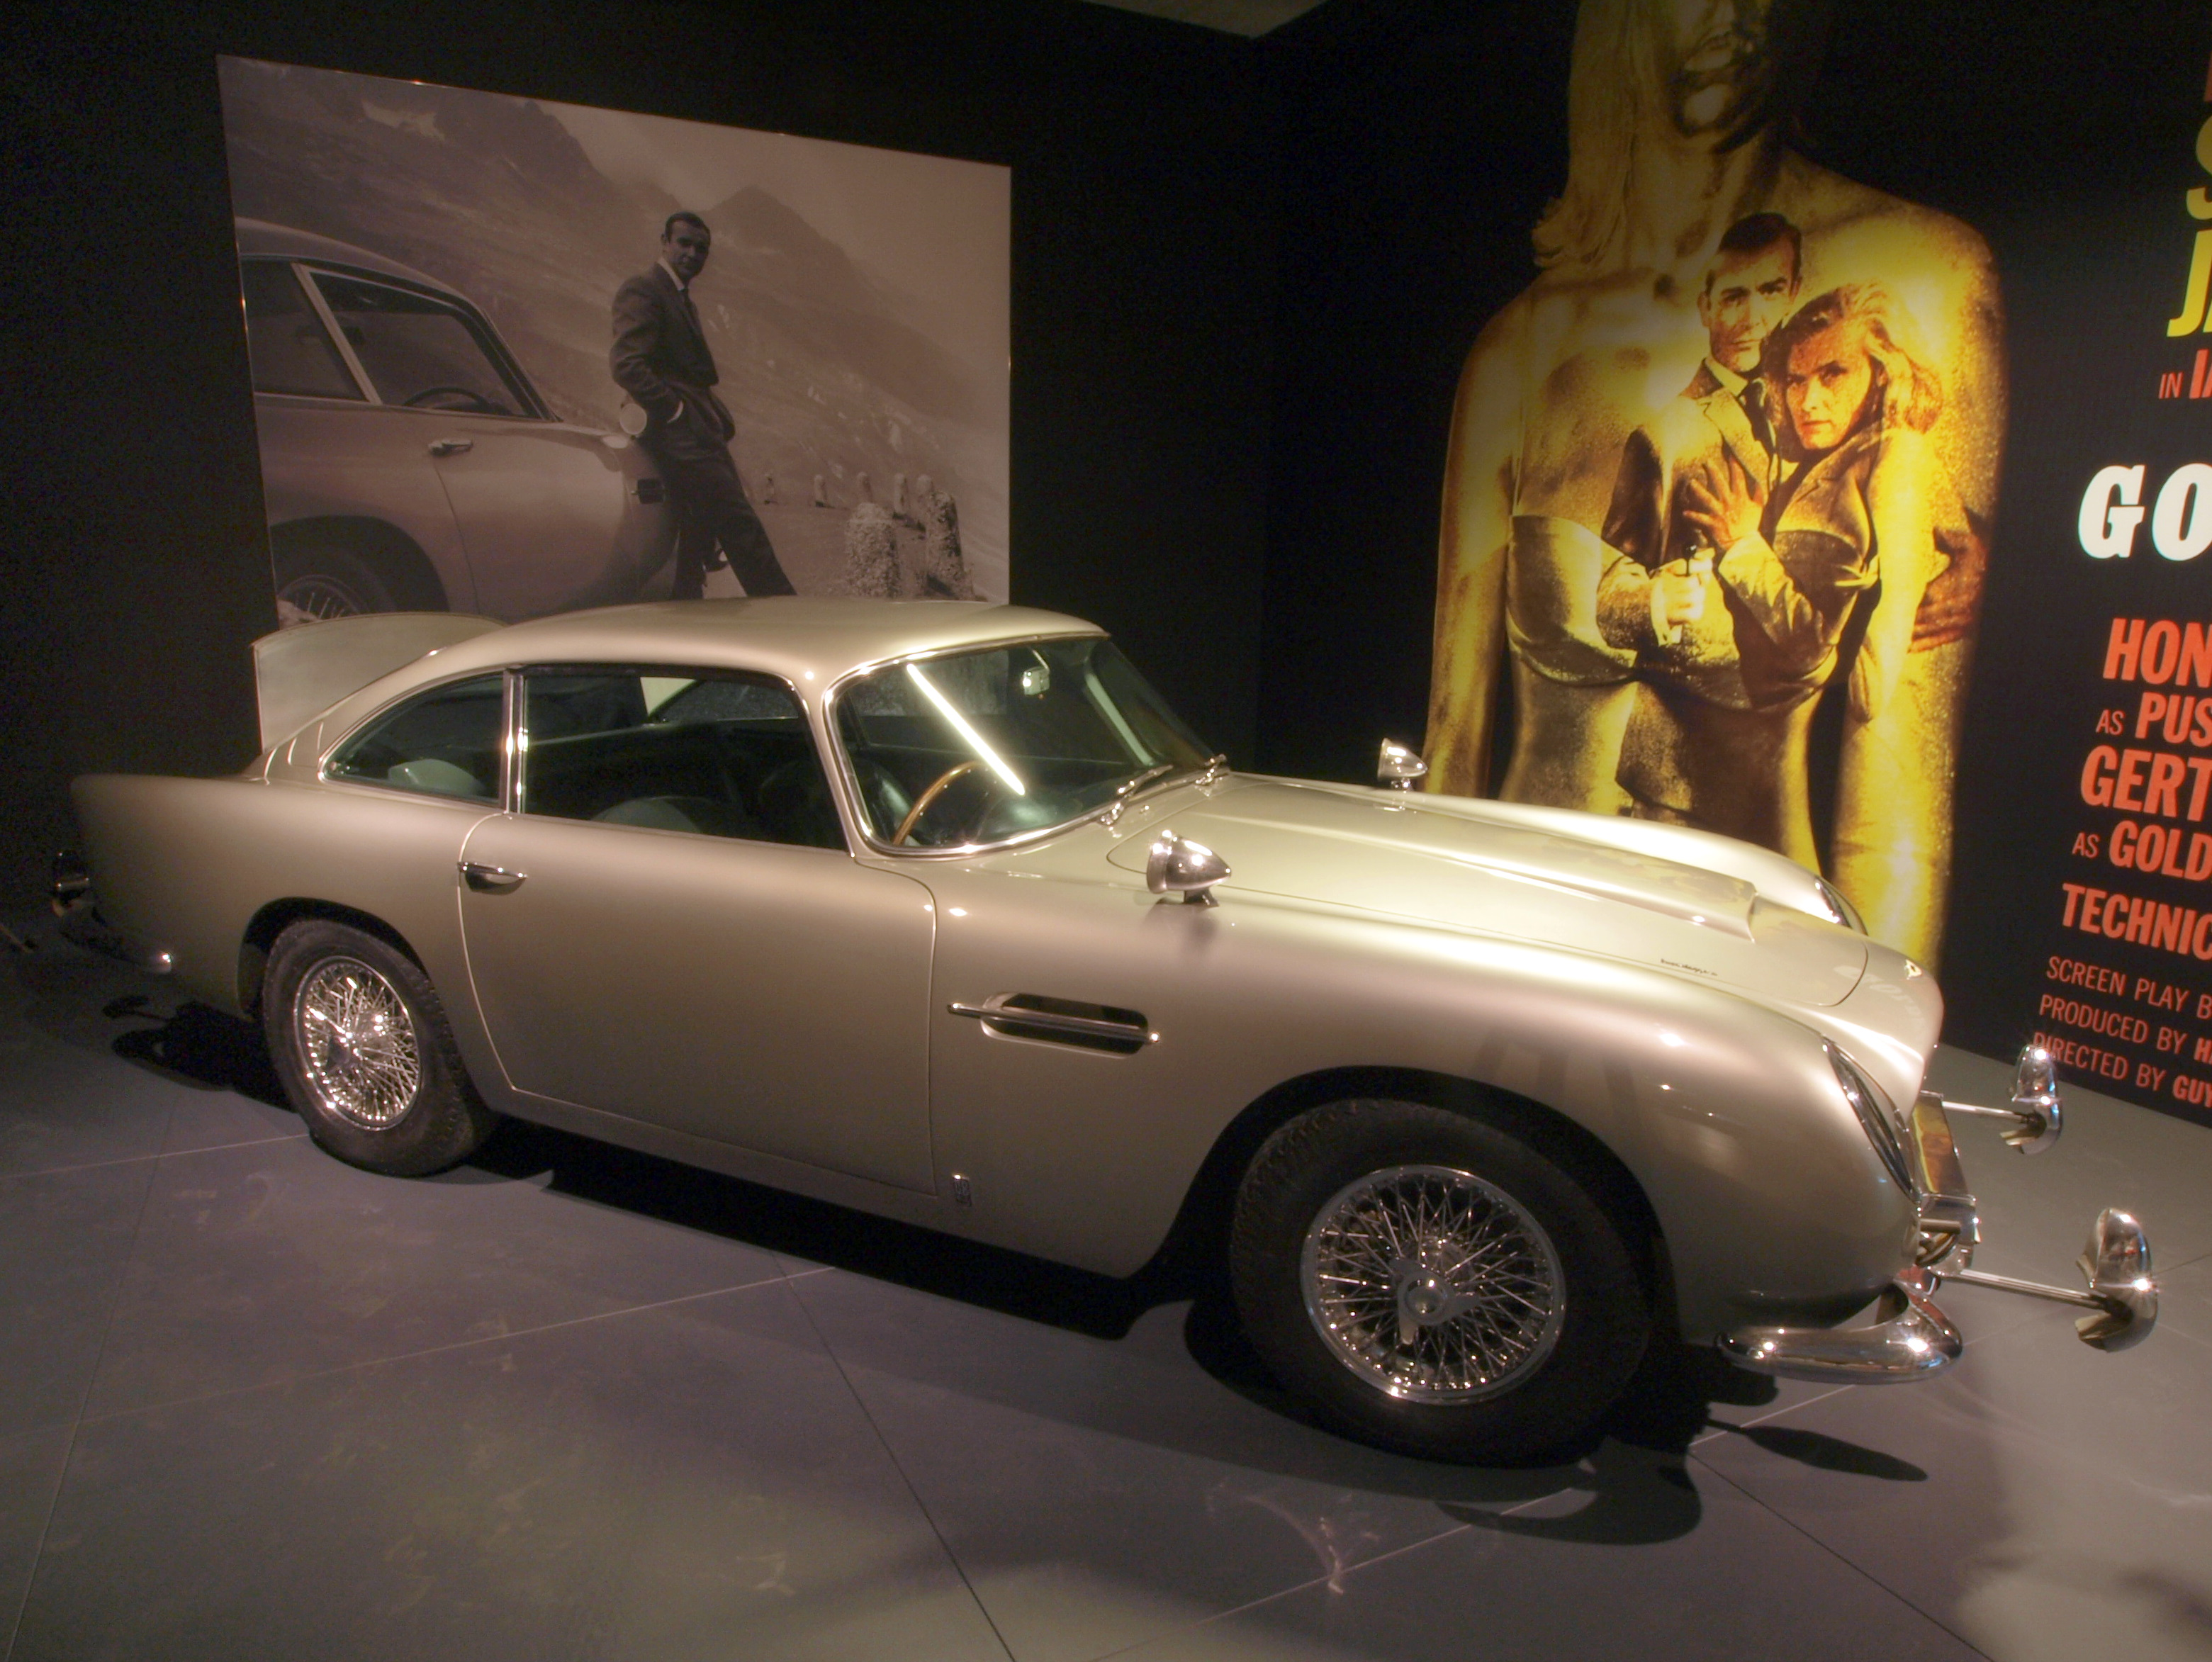 file aston martin db5 james bond photo1 jpg wikimedia commons. Black Bedroom Furniture Sets. Home Design Ideas